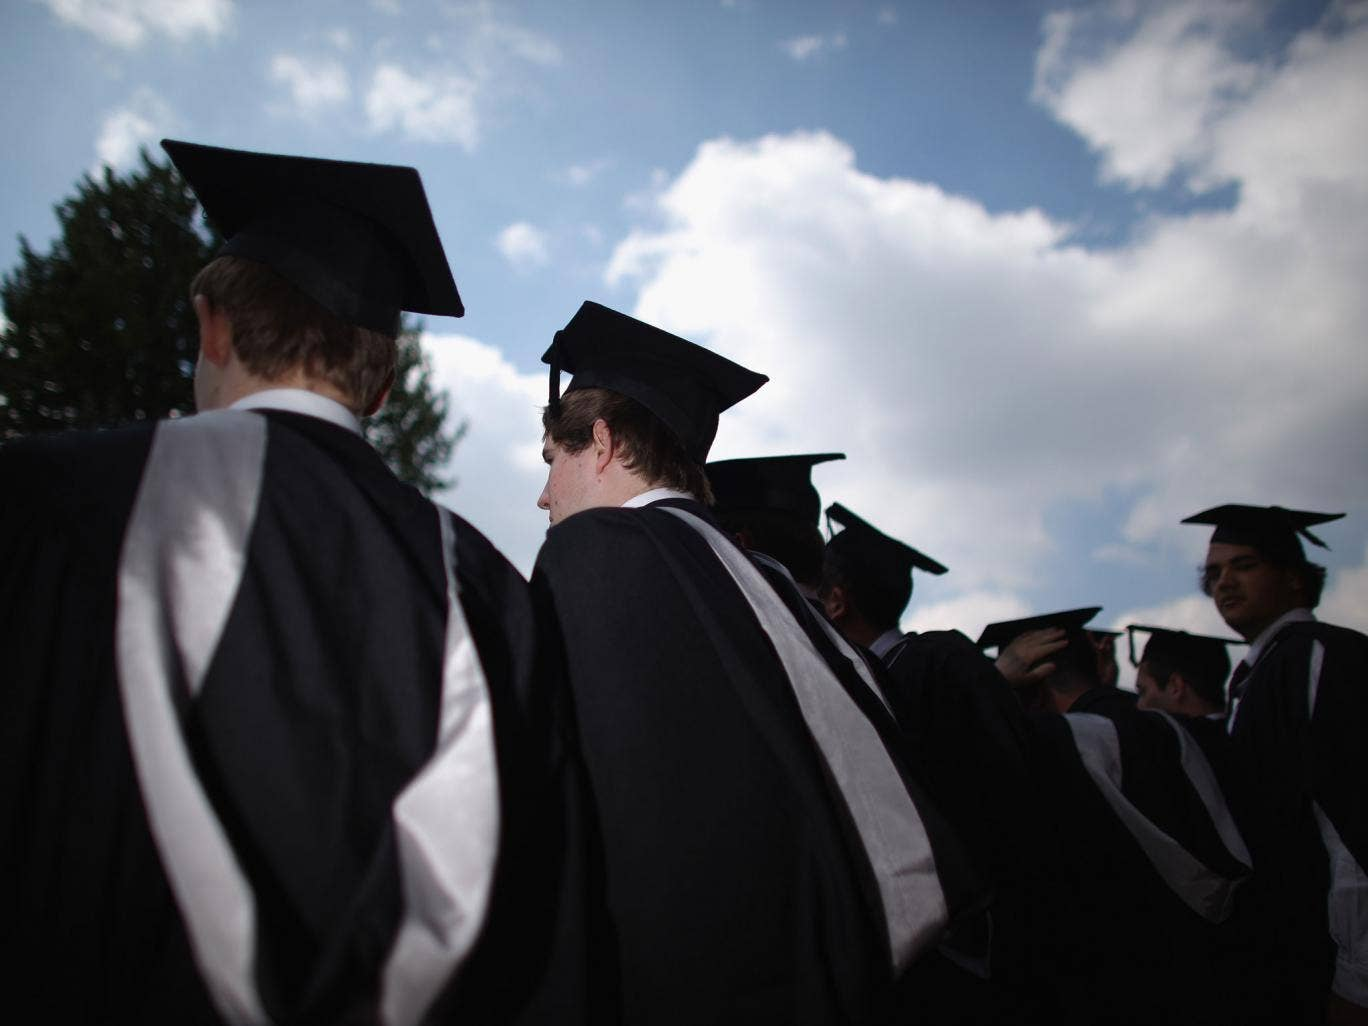 96 per cent of graduates said they had switched careers by the time they reached the age of 24